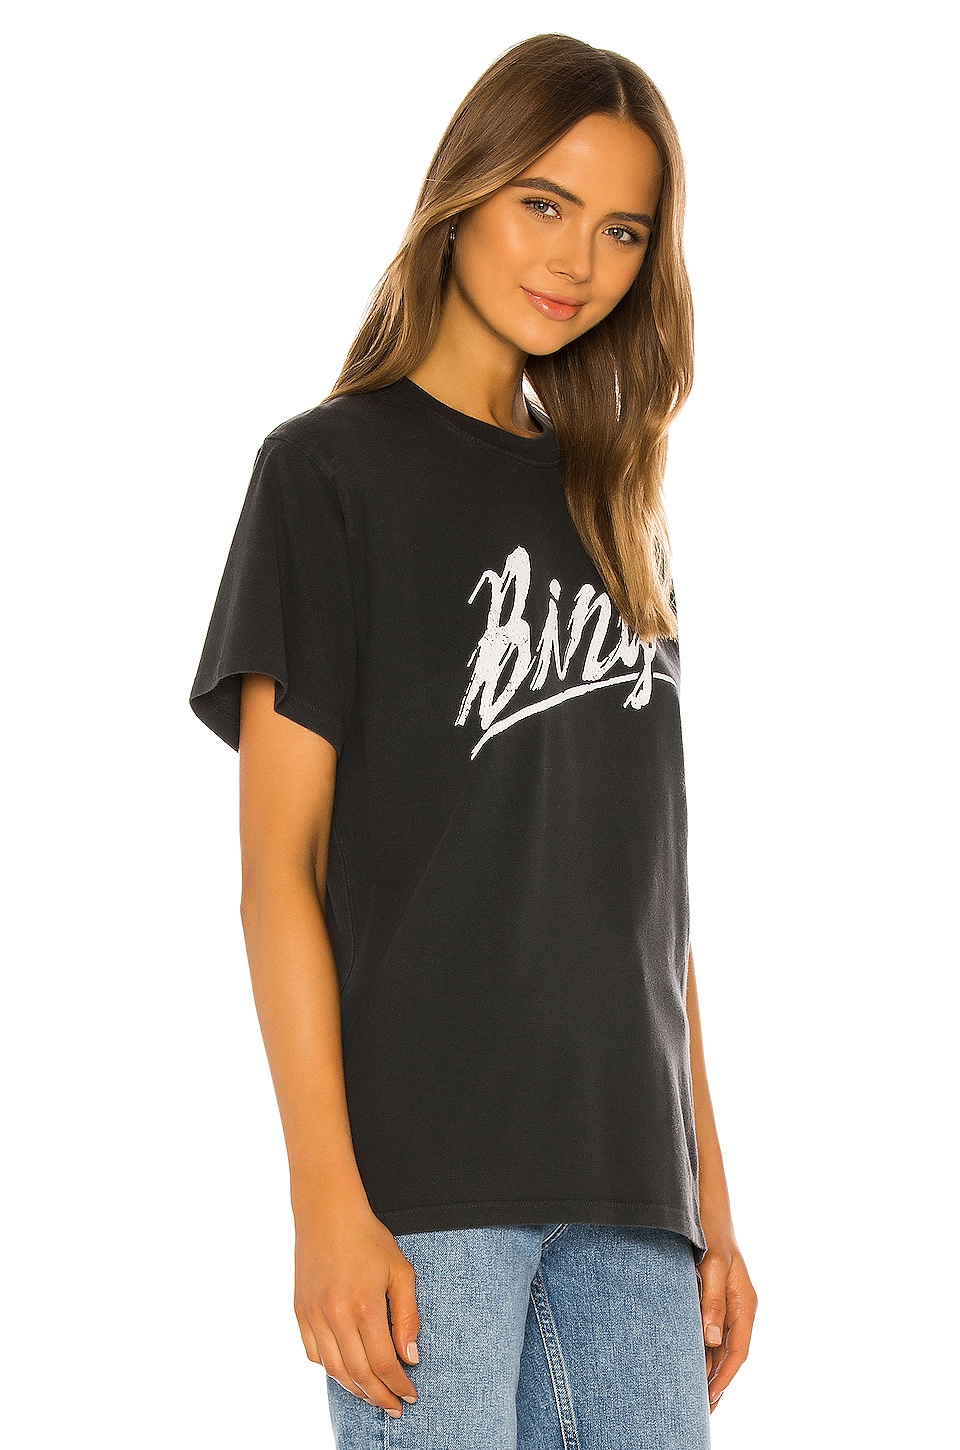 Basic Bing Tee, view 3, click to view large image.